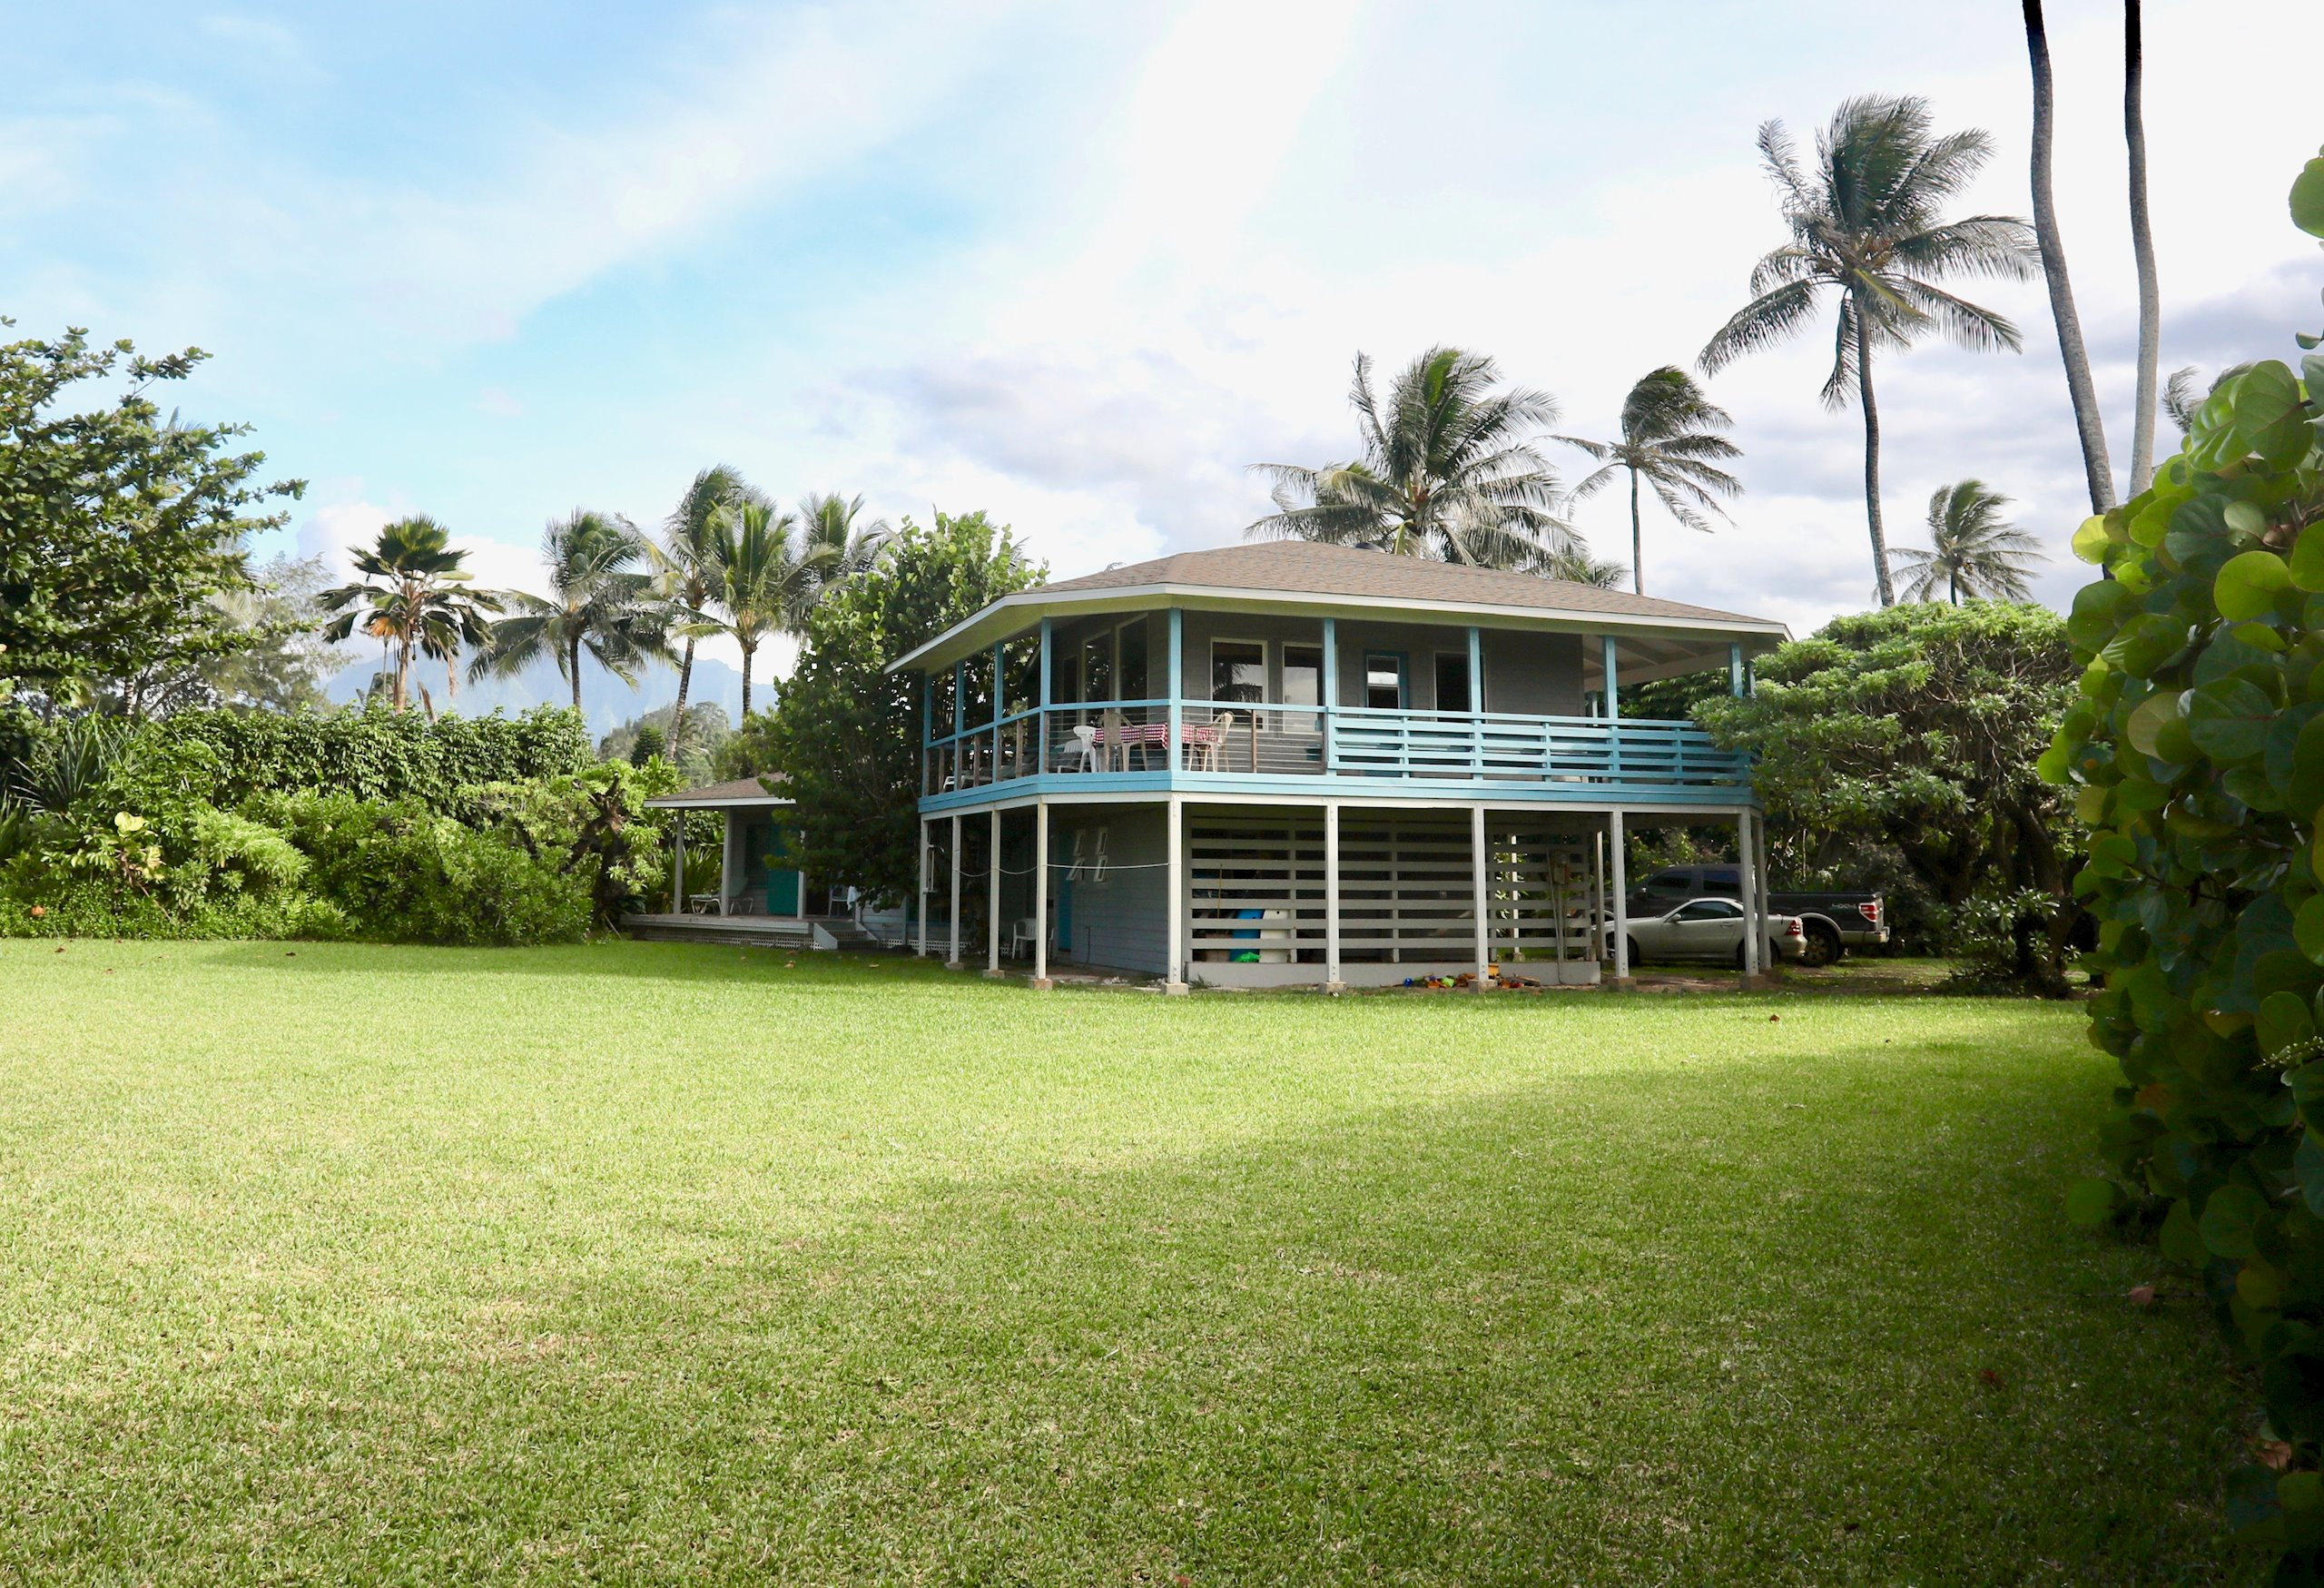 """Incredible location on the North Shore of Kauai. The private 3/4 acre property features a large sandy beach point. This is a rare opportunity to own beachfront property with the home being set back from the beach frontage.<br><br>Ocean and mountains views surround this quaint beach home. Large covered lanais extend the living areas. Extraordinary sweeping views from the dining and kitchen area with an open-beam ceiling providing an open space to see the beautiful pacific ocean and tropical reef. The home has an expansive lush green flowing grassy yard with palms trees flowing in the cool tradewinds.<br> <br>The property overlooks water enthusiasts of all kinds providing an array of waters activity. <br><br>Hale Kiloi'a is an exceptional property offered to the market for a fair market price.<br><br>Property is being sold """"AS IS""""<br><br>County records show a 1 bedroom home. The information herein may contain inaccuracies and is provided without warranty or guaranty of any kind and is not warranted or guaranteed. Agents and Buyers are encouraged to independently verify all information. A certified Appraiser should determine the actual square footage."""